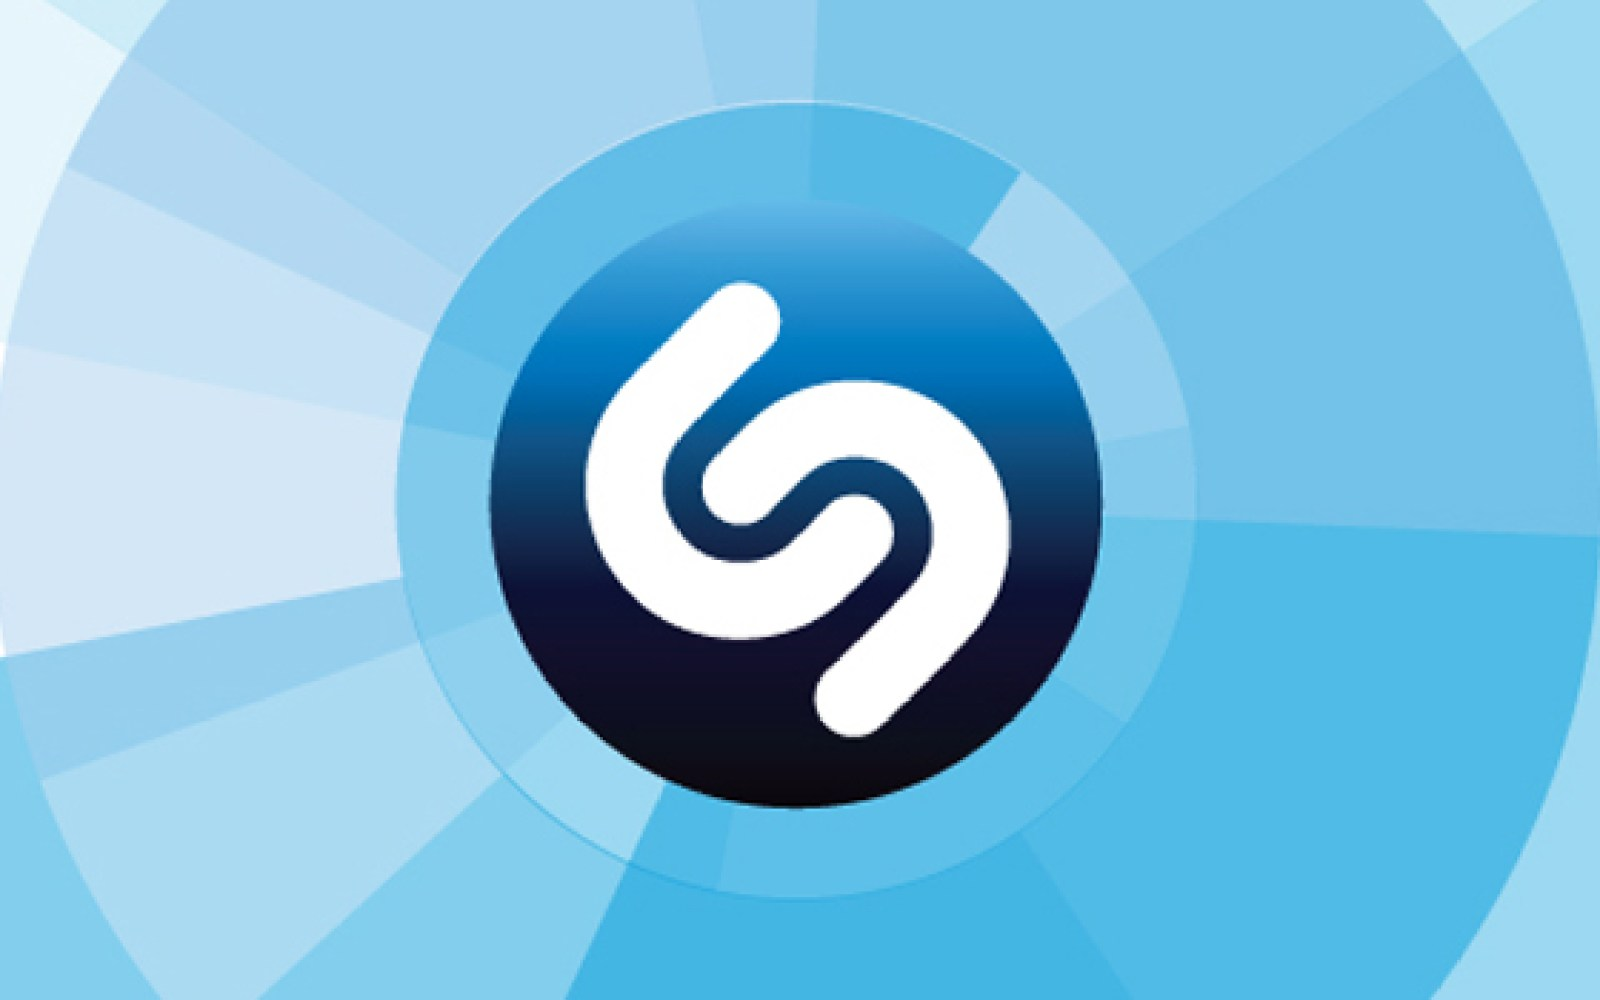 Apple and Shazam planning to team up for music identification feature built into iOS